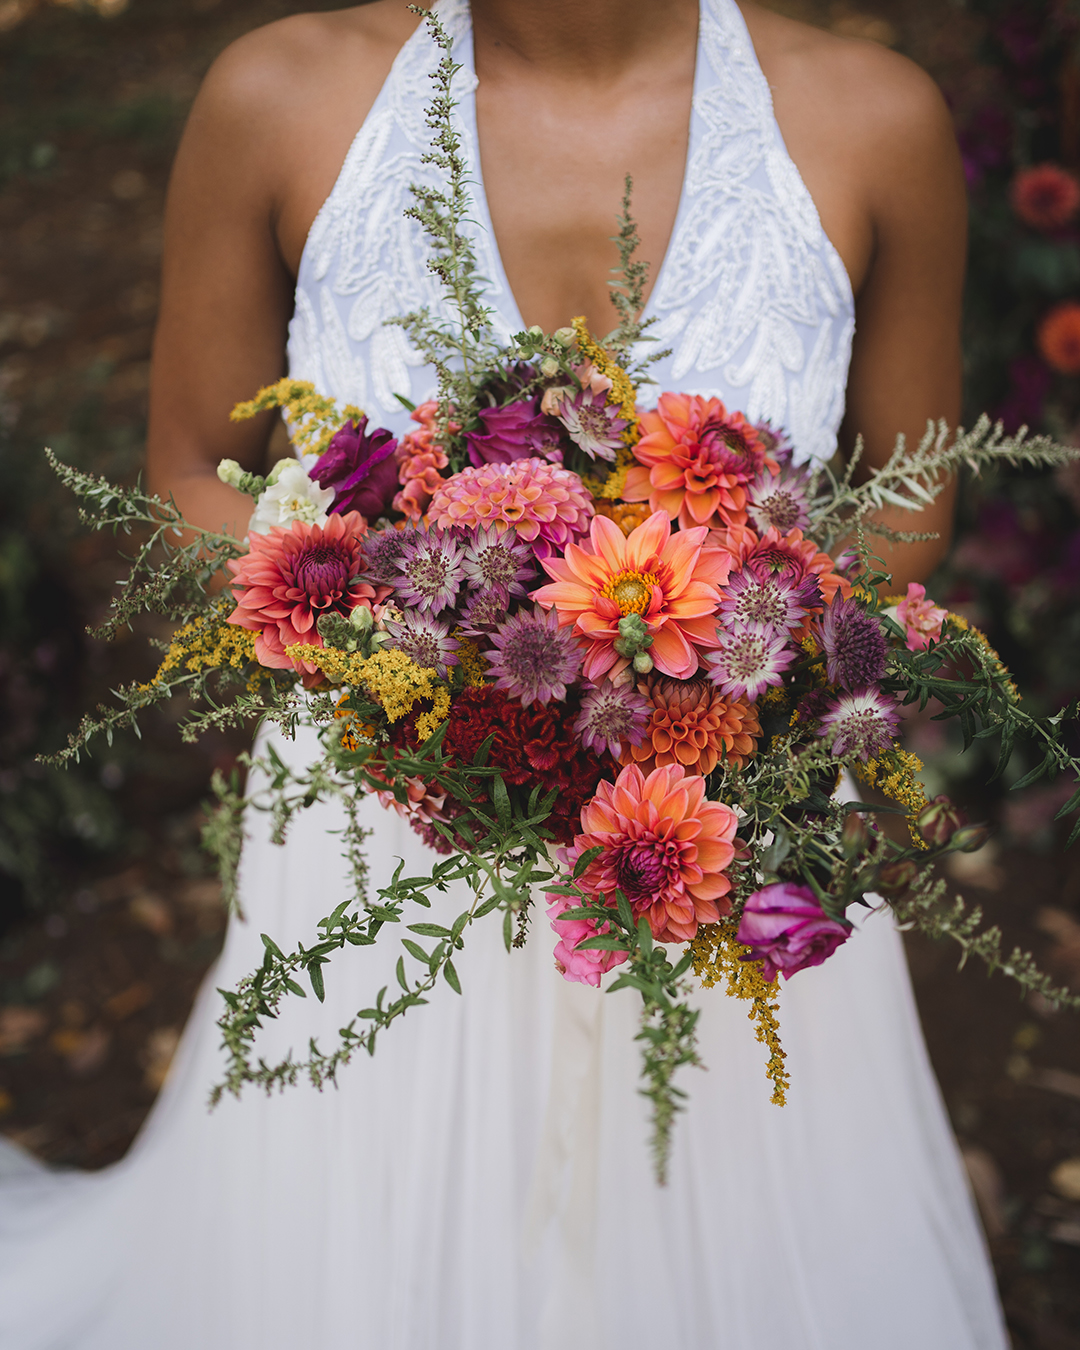 closeup of flower bouquet and bride